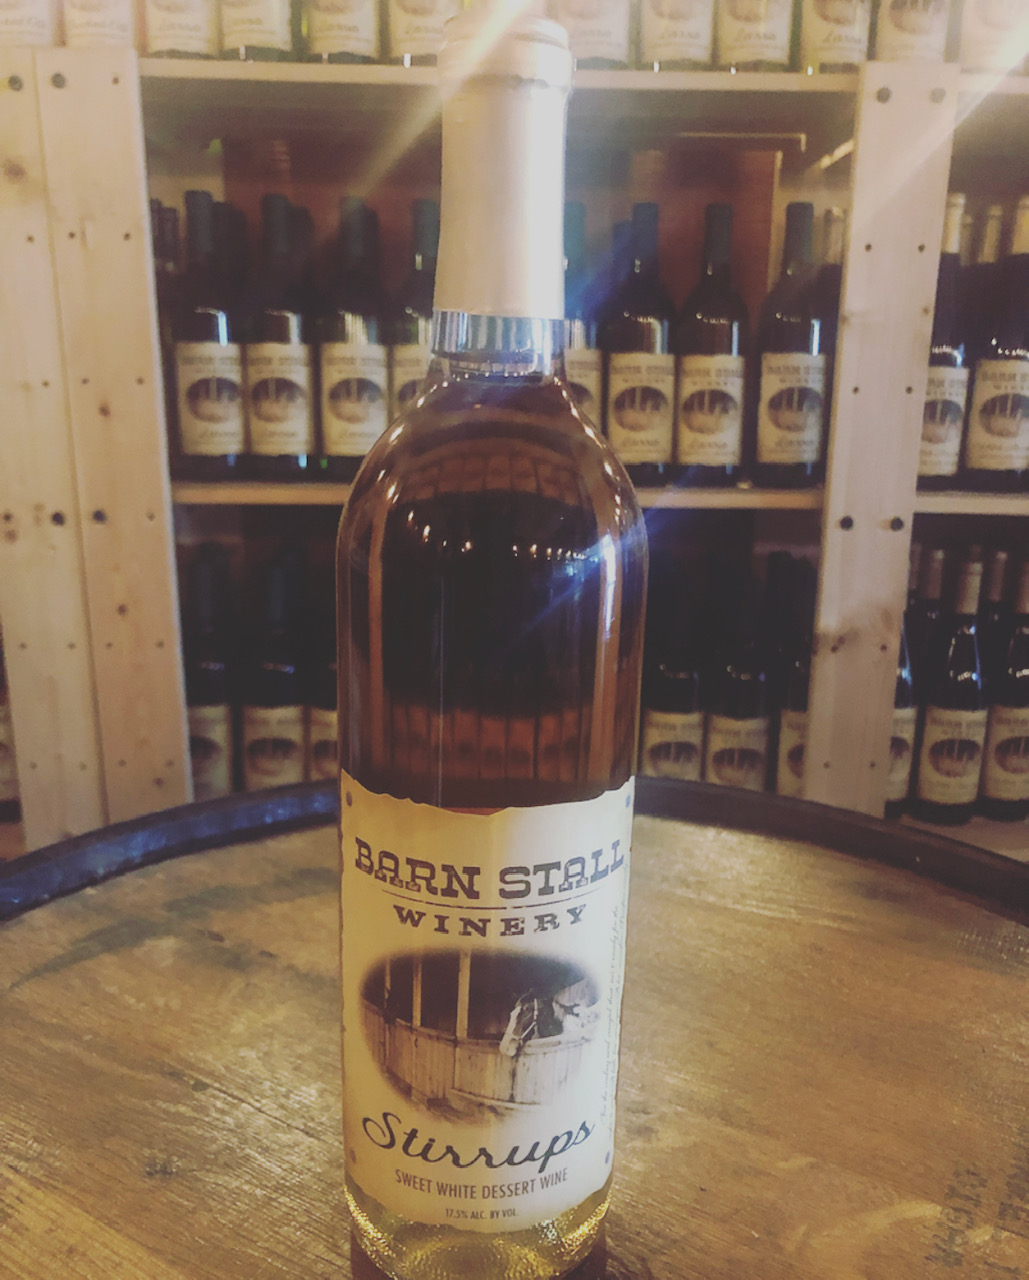 Stirrups - Sweet White Dessert Wine. For the cowboy and cowgirl that ain't ready for the night to end. A little bit stronger. A lot smoother. Bonfire ready. 17.5% alc